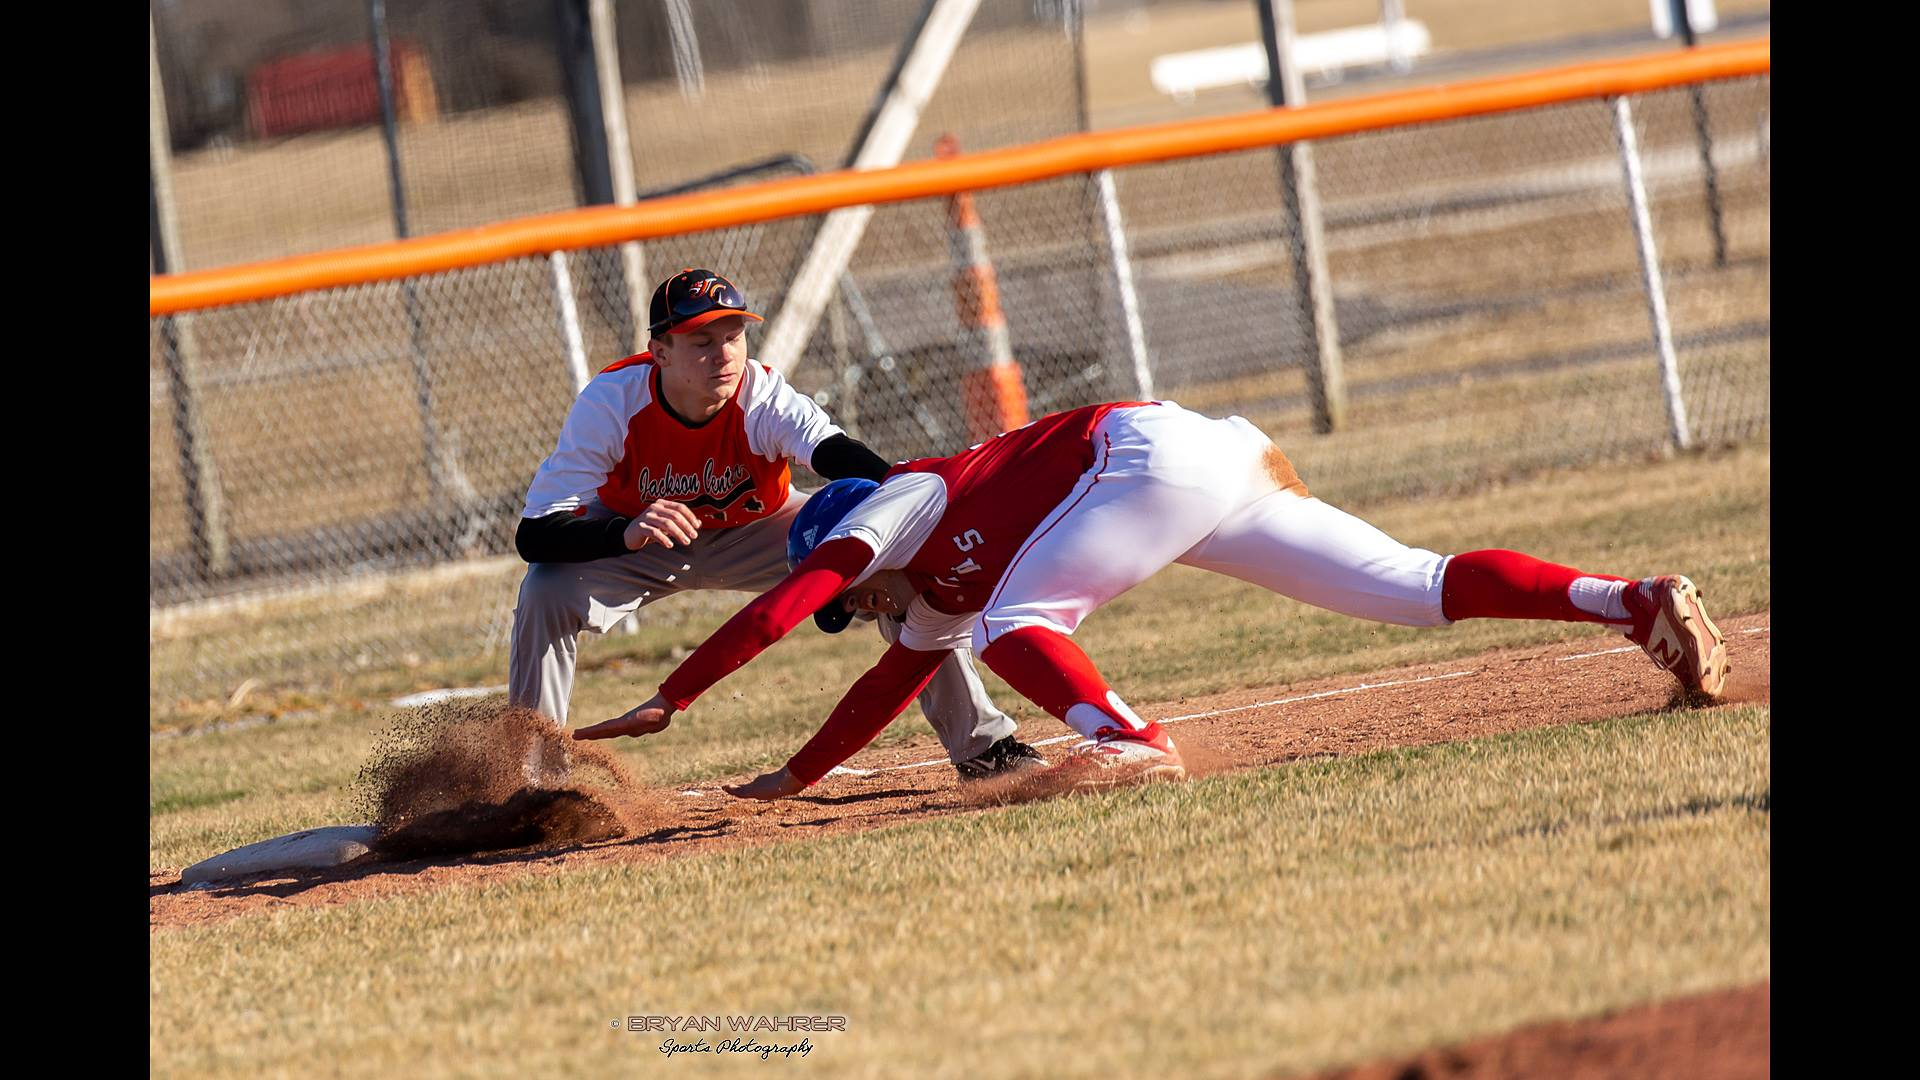 baseball player sliding into base and being tagged